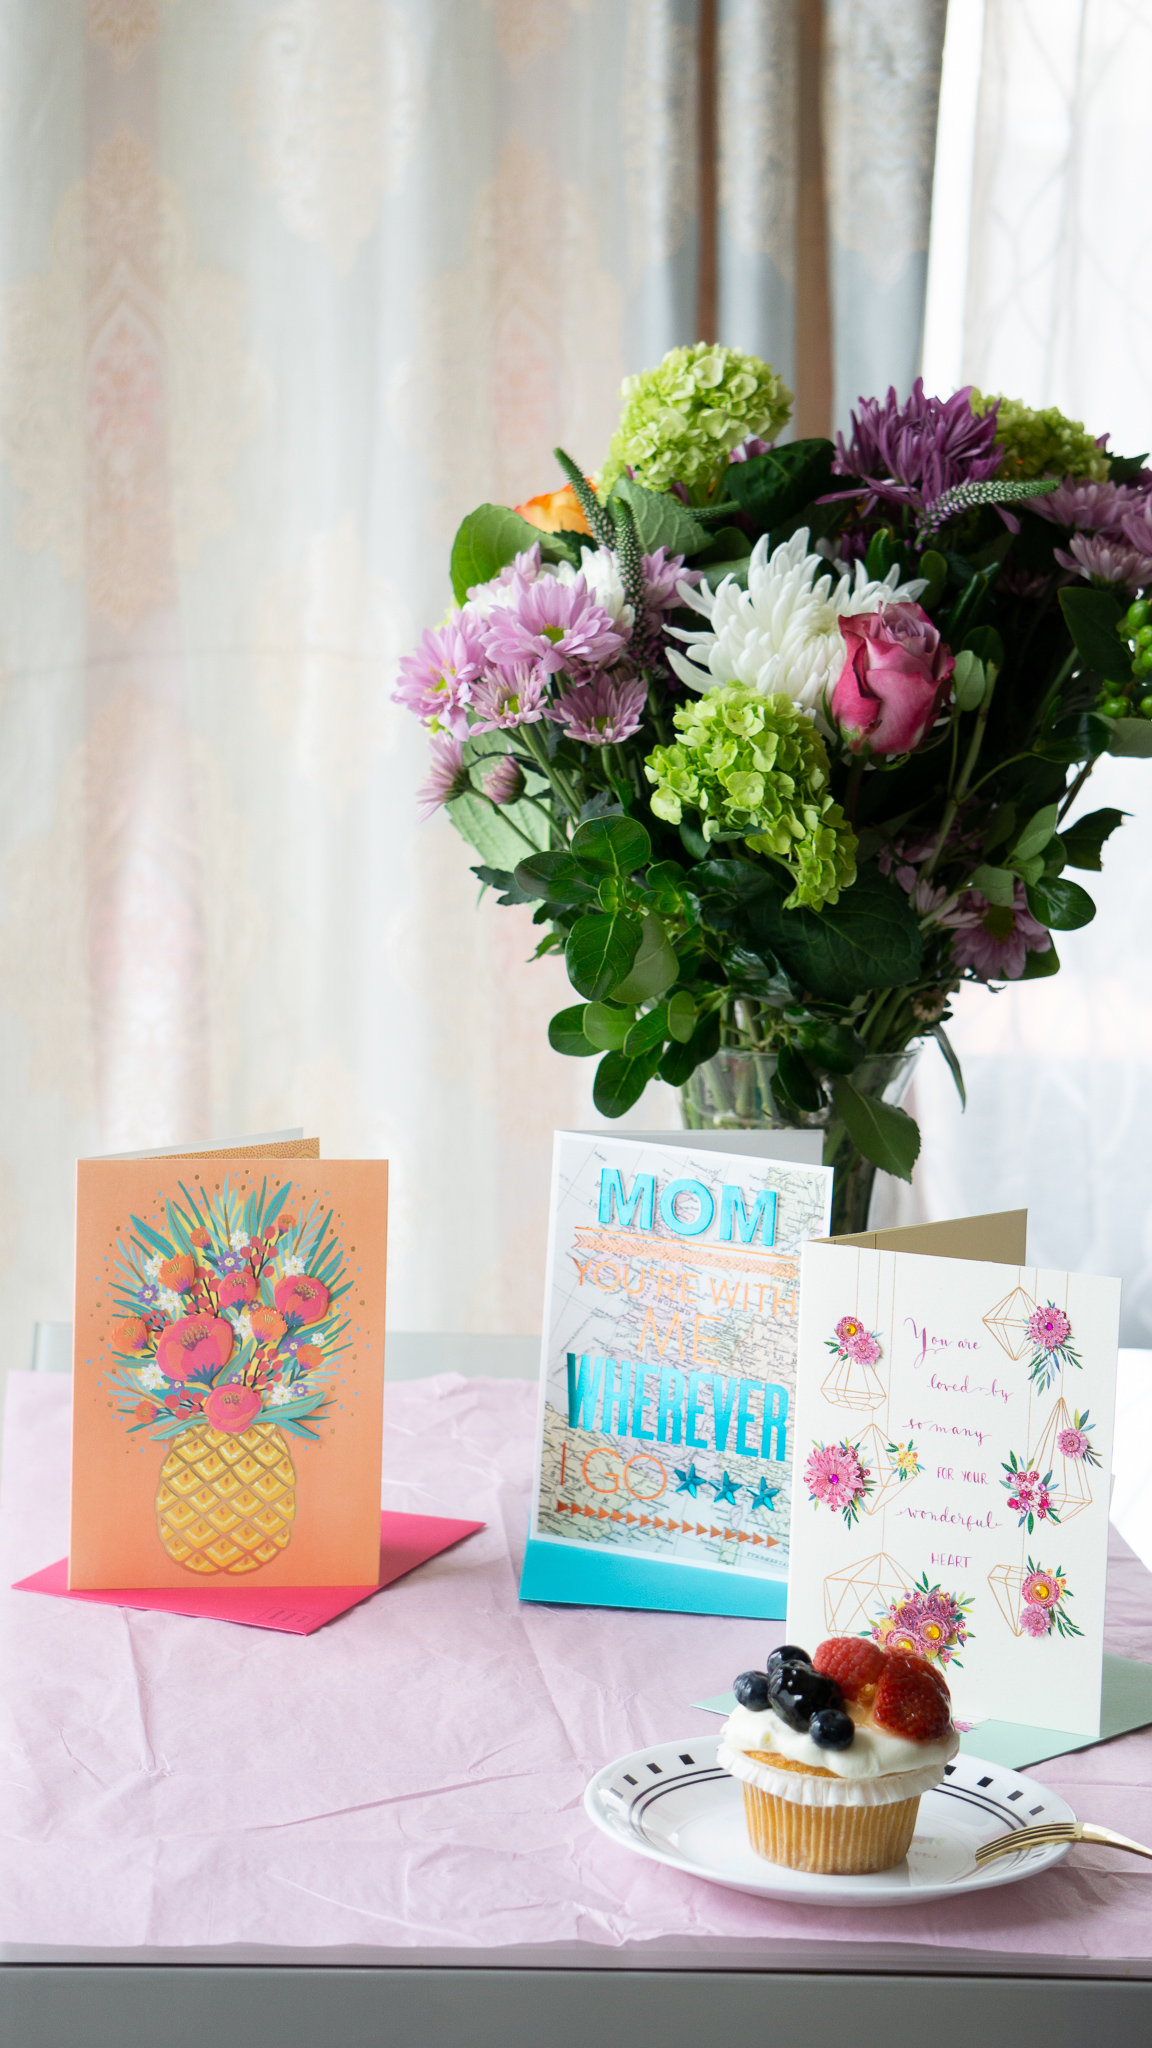 Celebrate Mother's Day with the gift of words